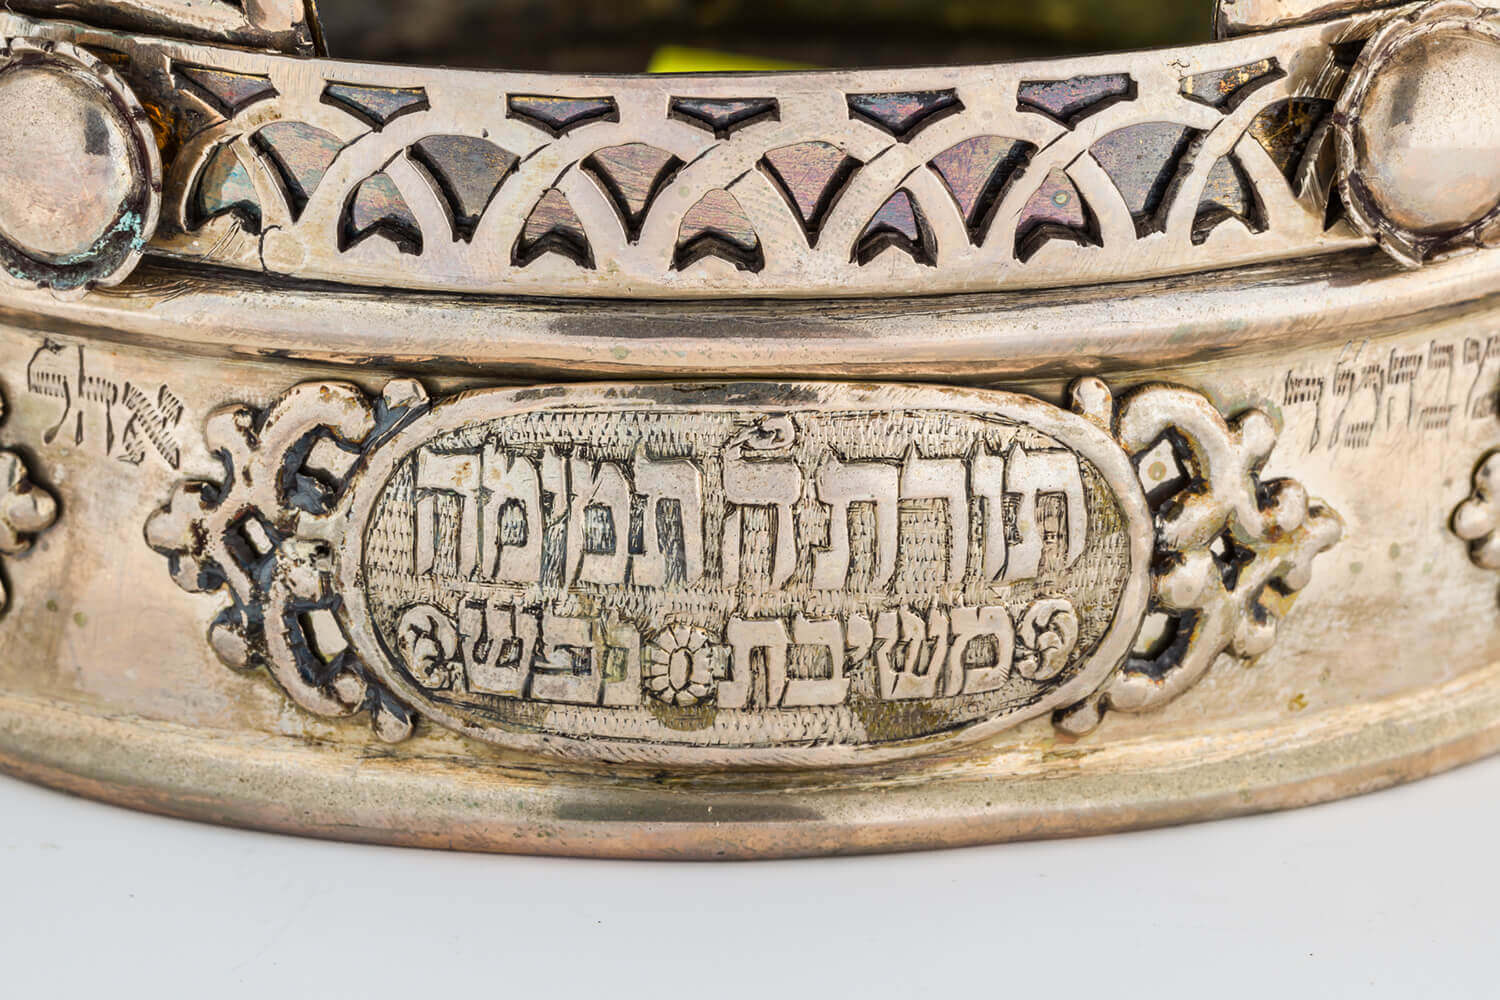 144. A PARCEL GILT TORAH CROWN